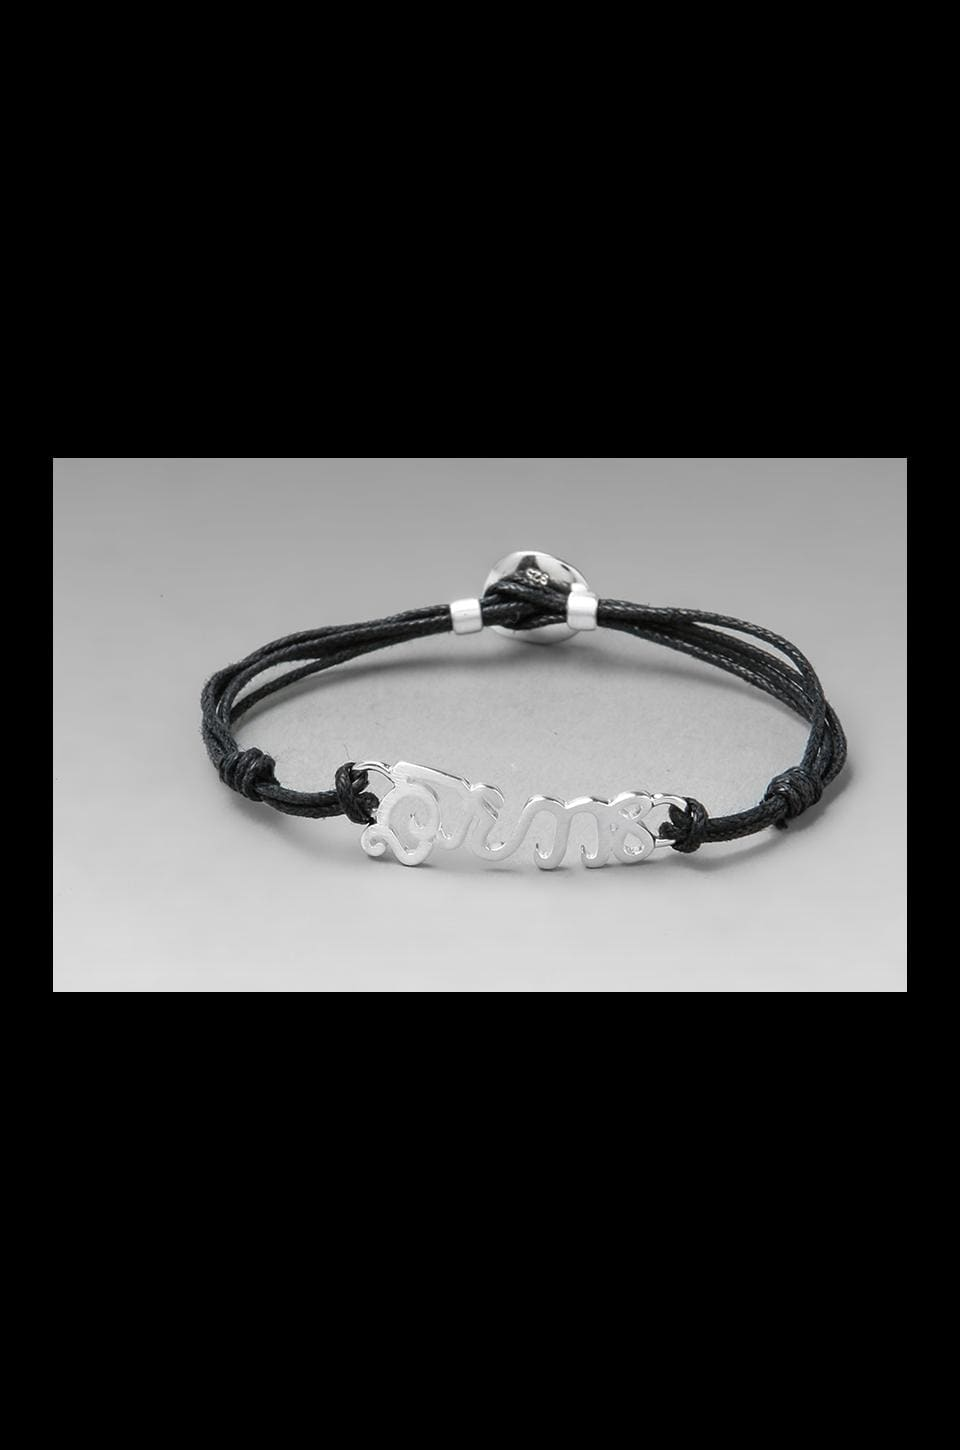 The Brave Collection Silver Cord Bracelet in Black